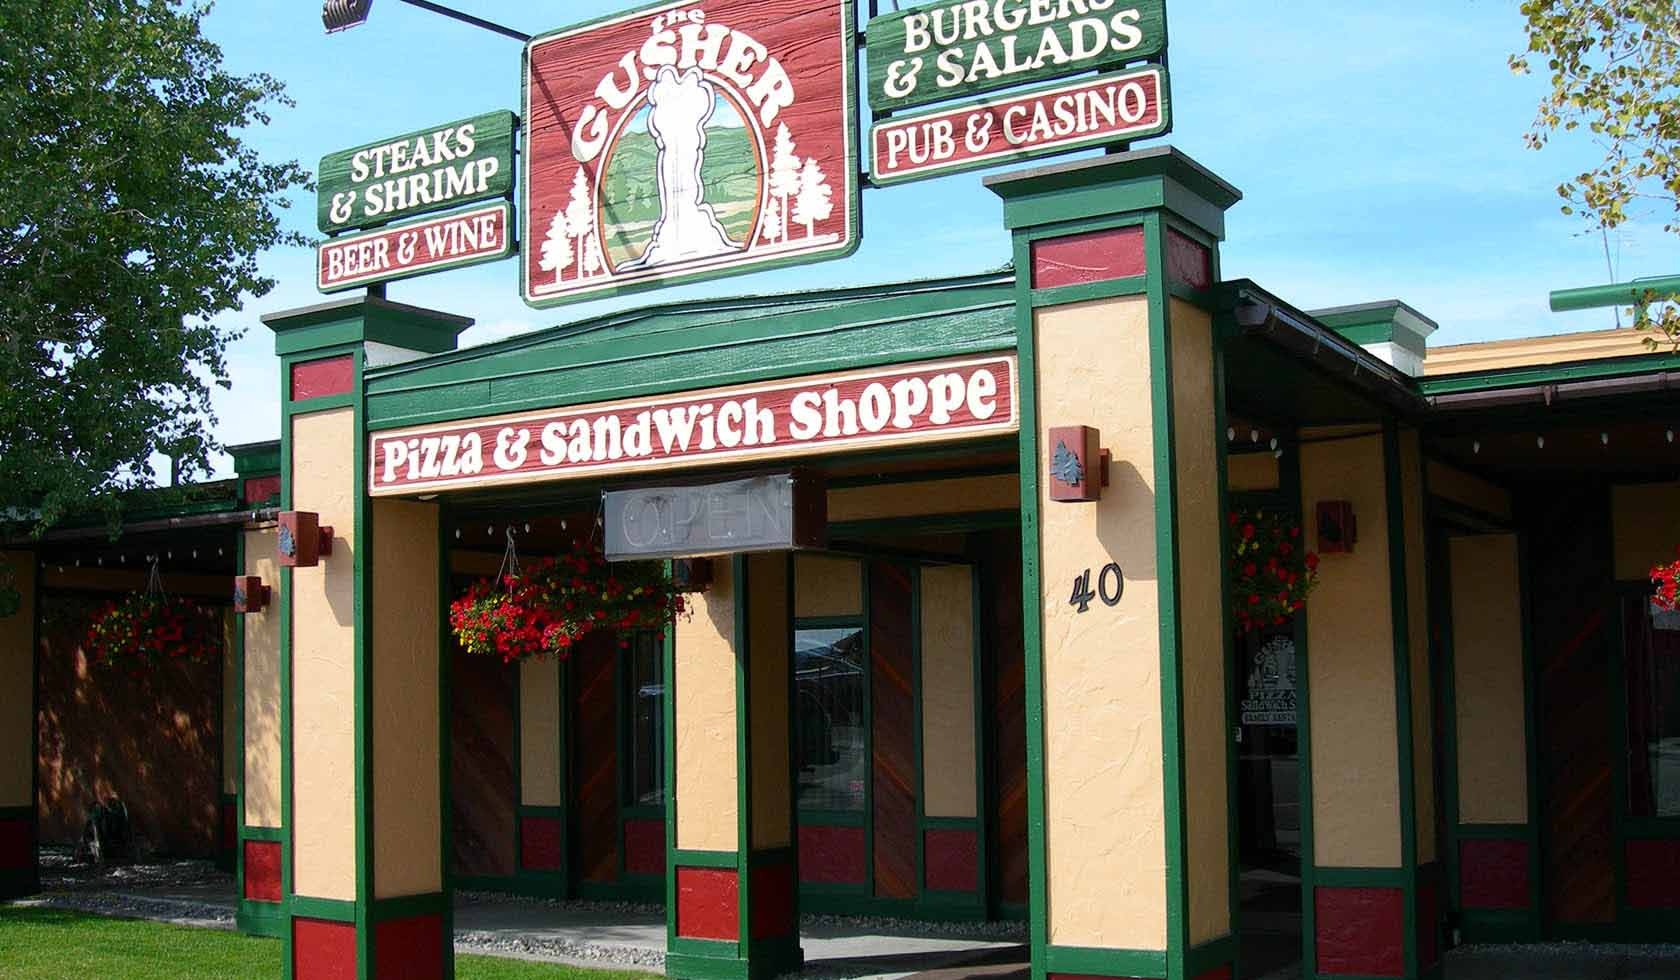 The Gusher Pizza & Sandwich Shoppe profile image